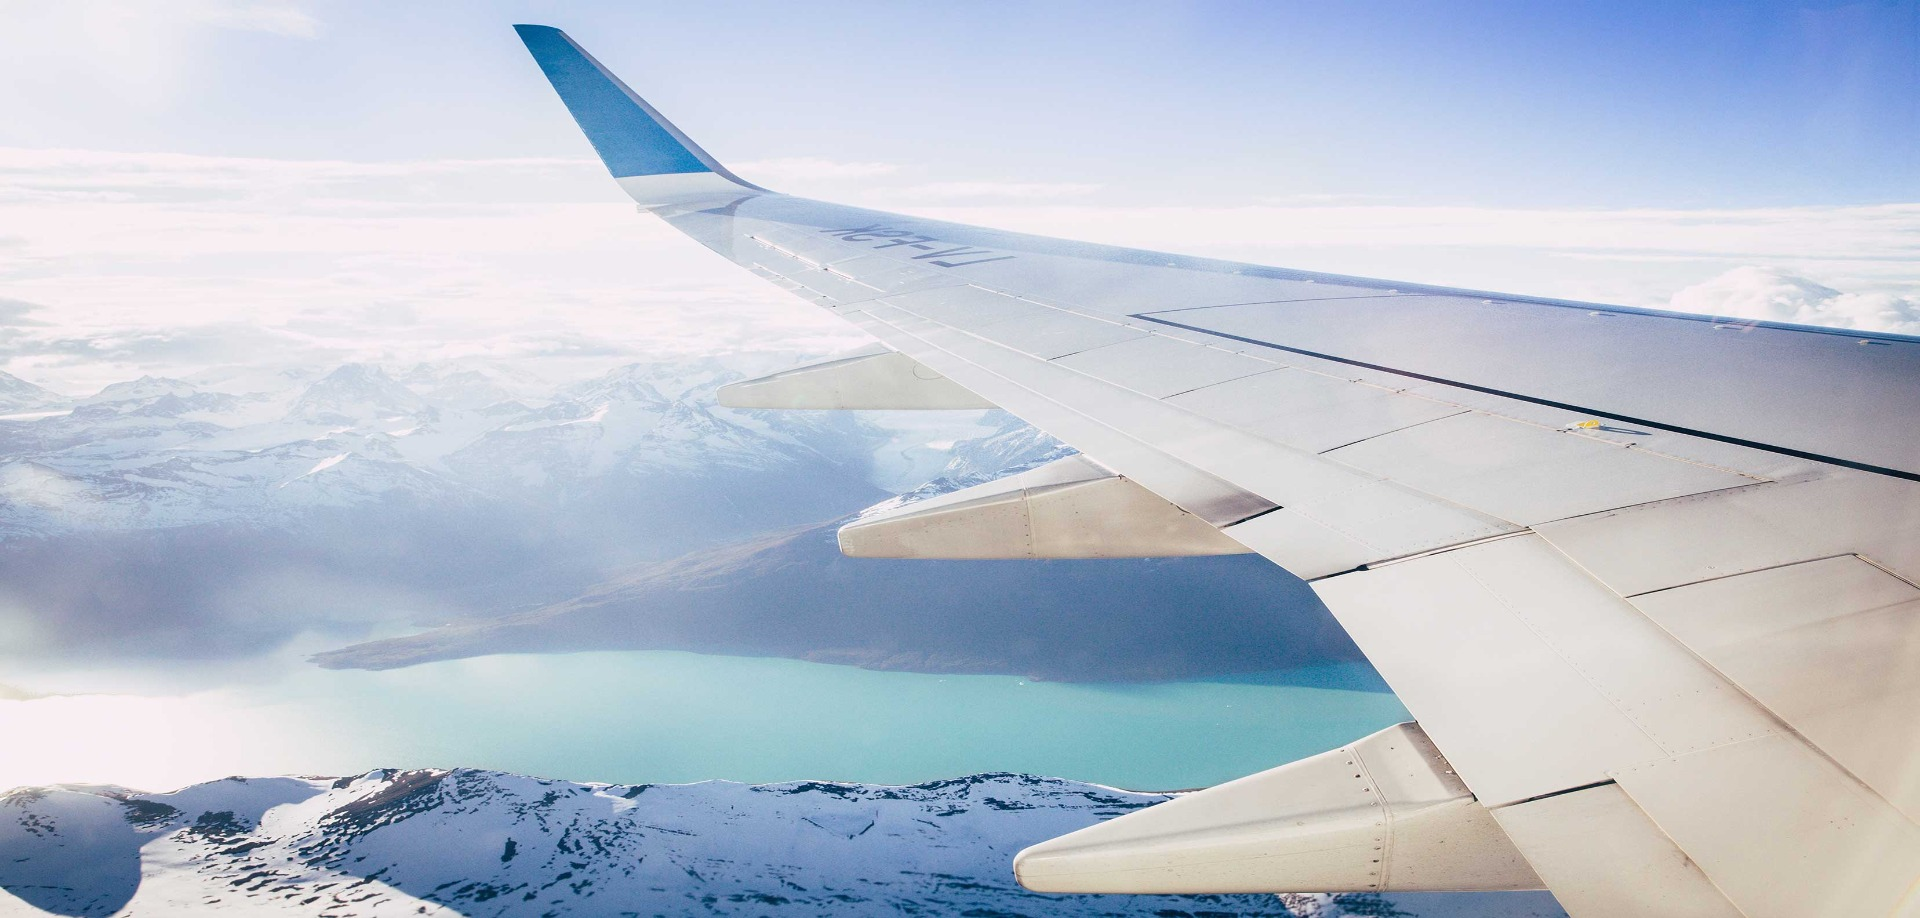 View from an airplane window over the wing out to a landscape of a frozen see and snow covered mountains.